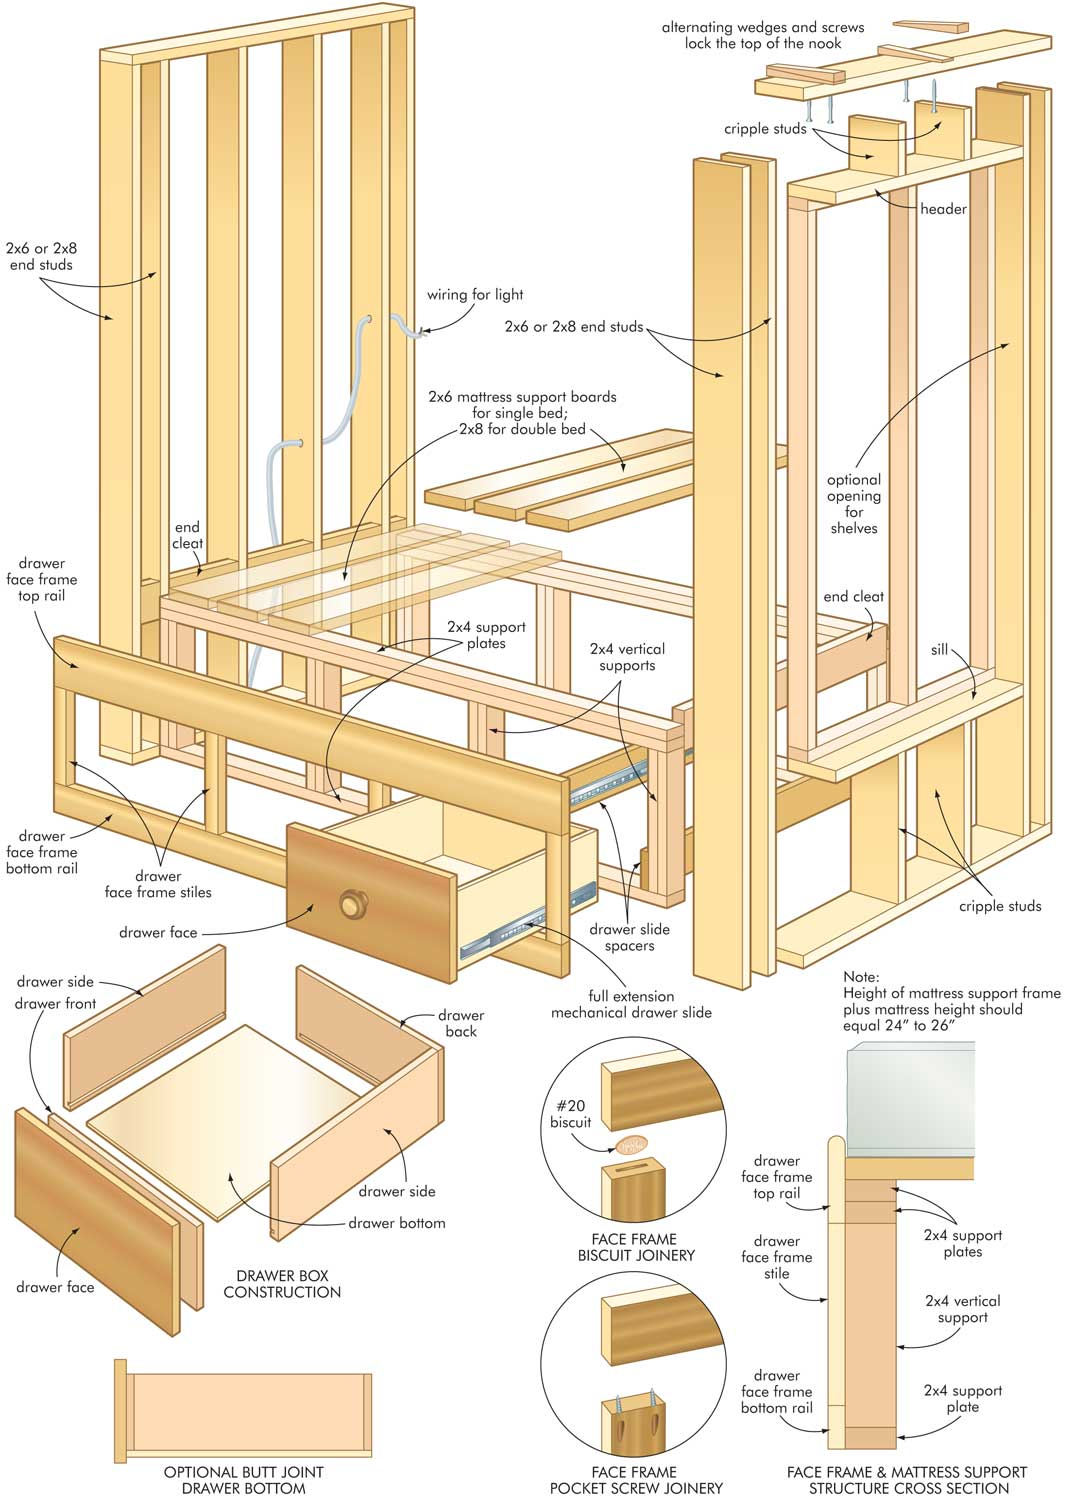 Woodworking building plans pdf woodworking for How to build a timber frame house